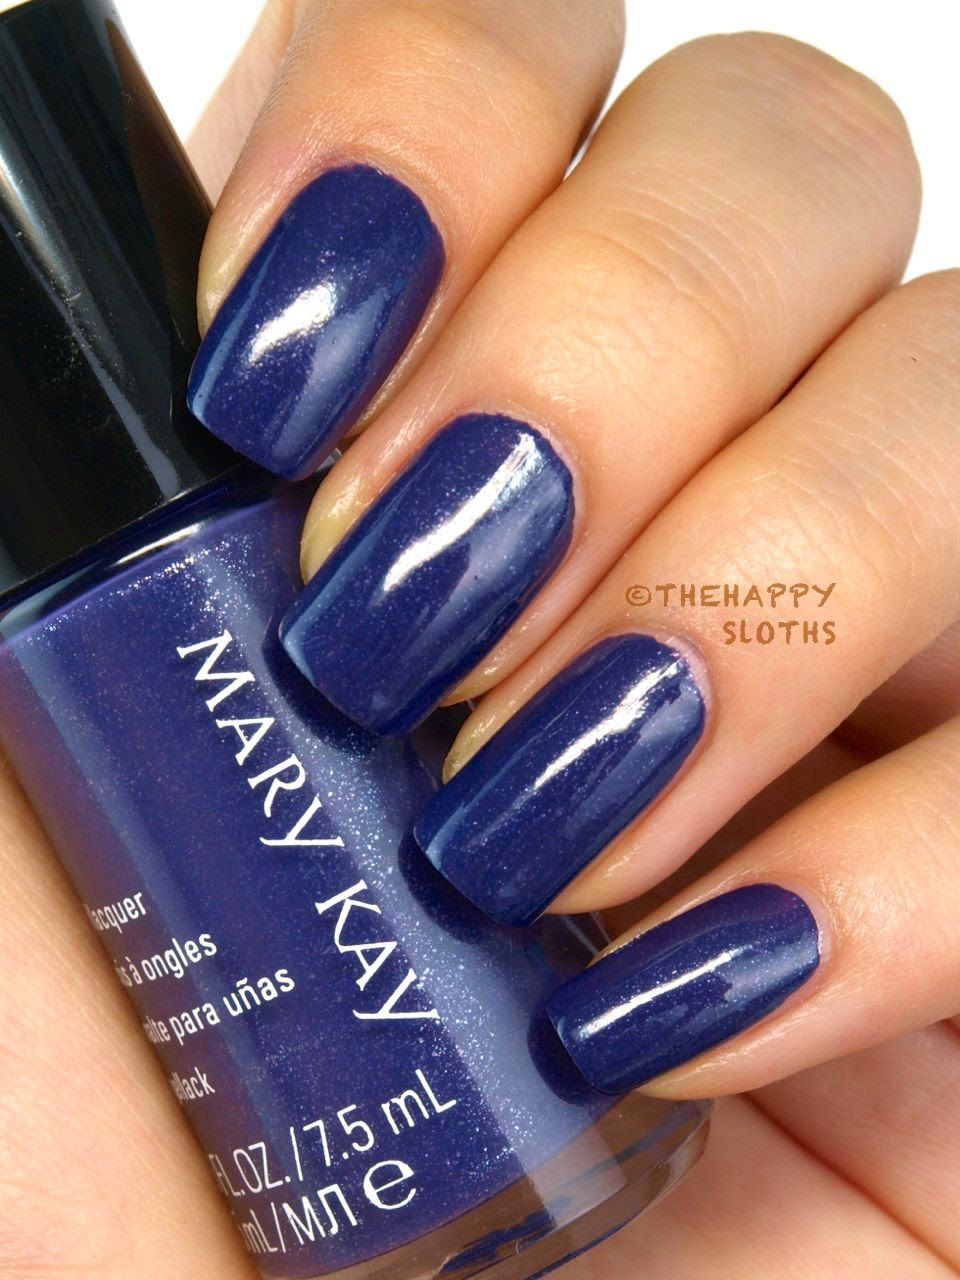 fall 2014 mary kay limited edition midnight jewels collection nail lacquer in sapphire noir